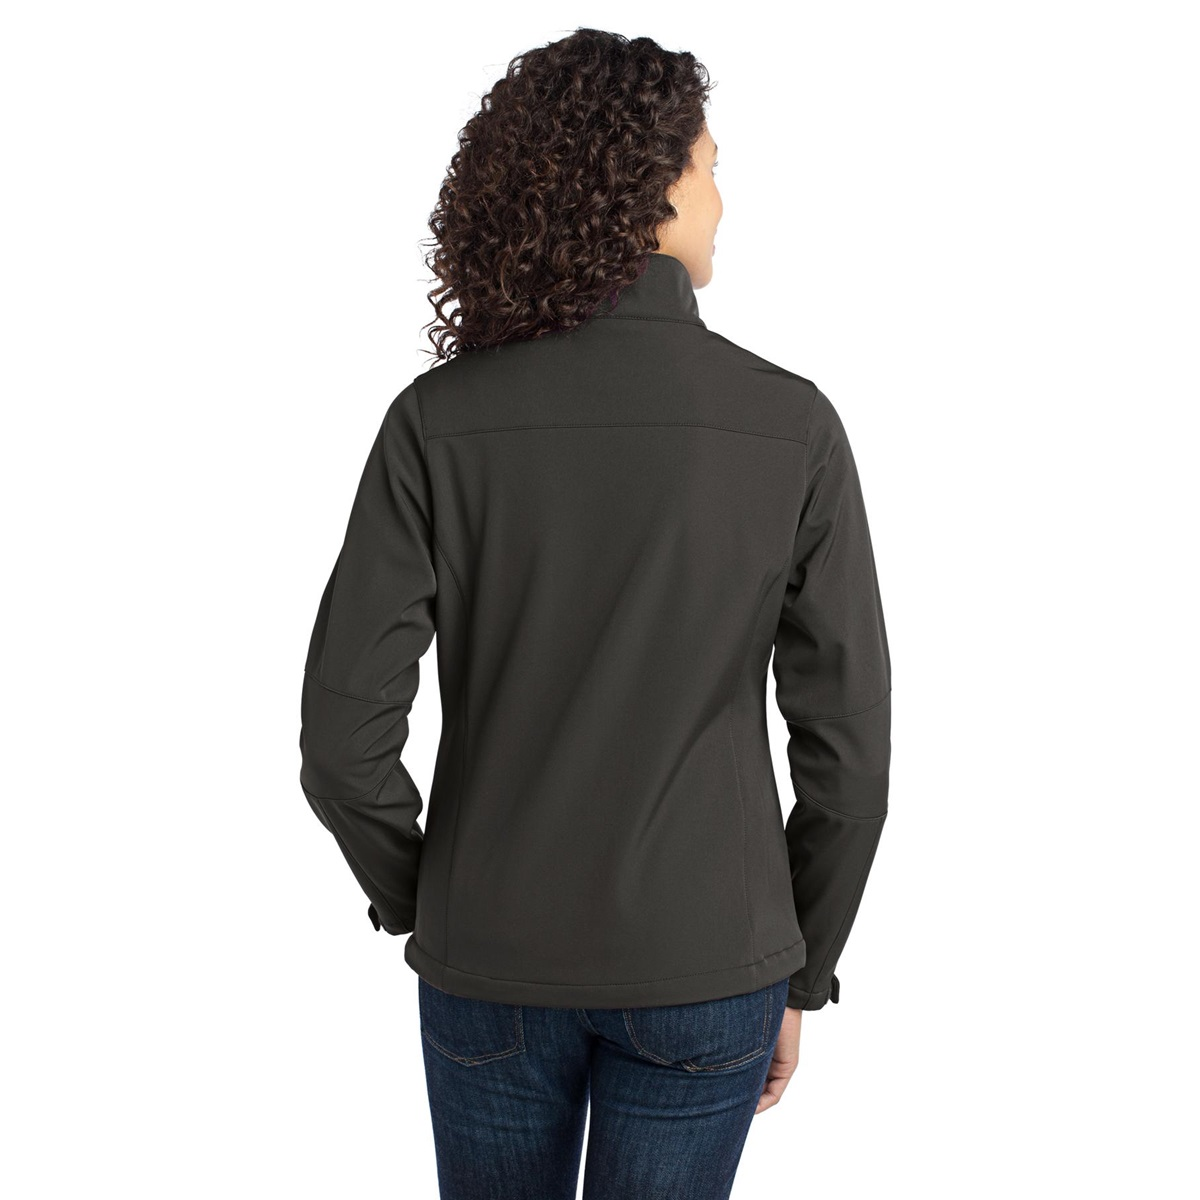 Port authority l316 ladies traverse soft shell jacket for Deep grey color